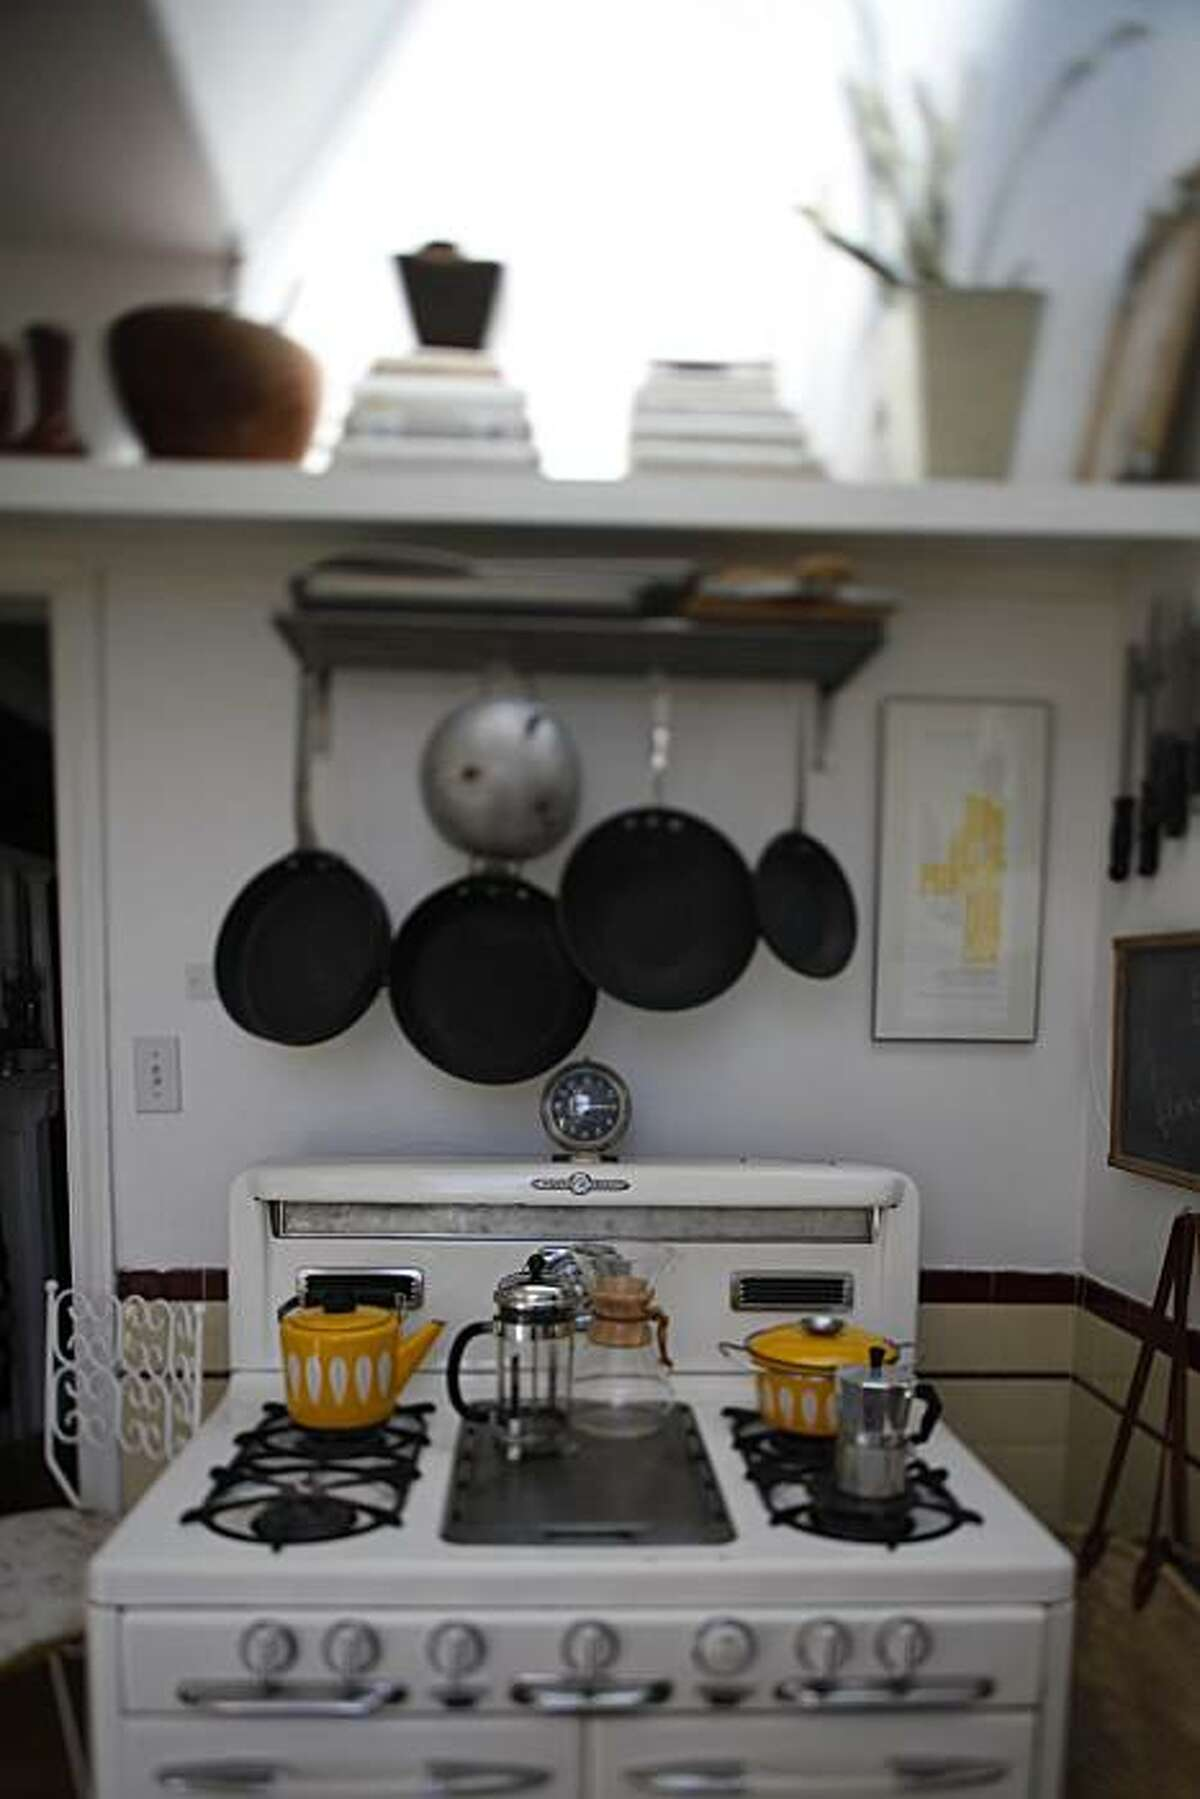 The O'Keefe & Merritt stovetop is seen in the home of SFGirlbyBay blogger Victoria Smith in San Francisco, Calif. on Tuesday August 31, 2010.